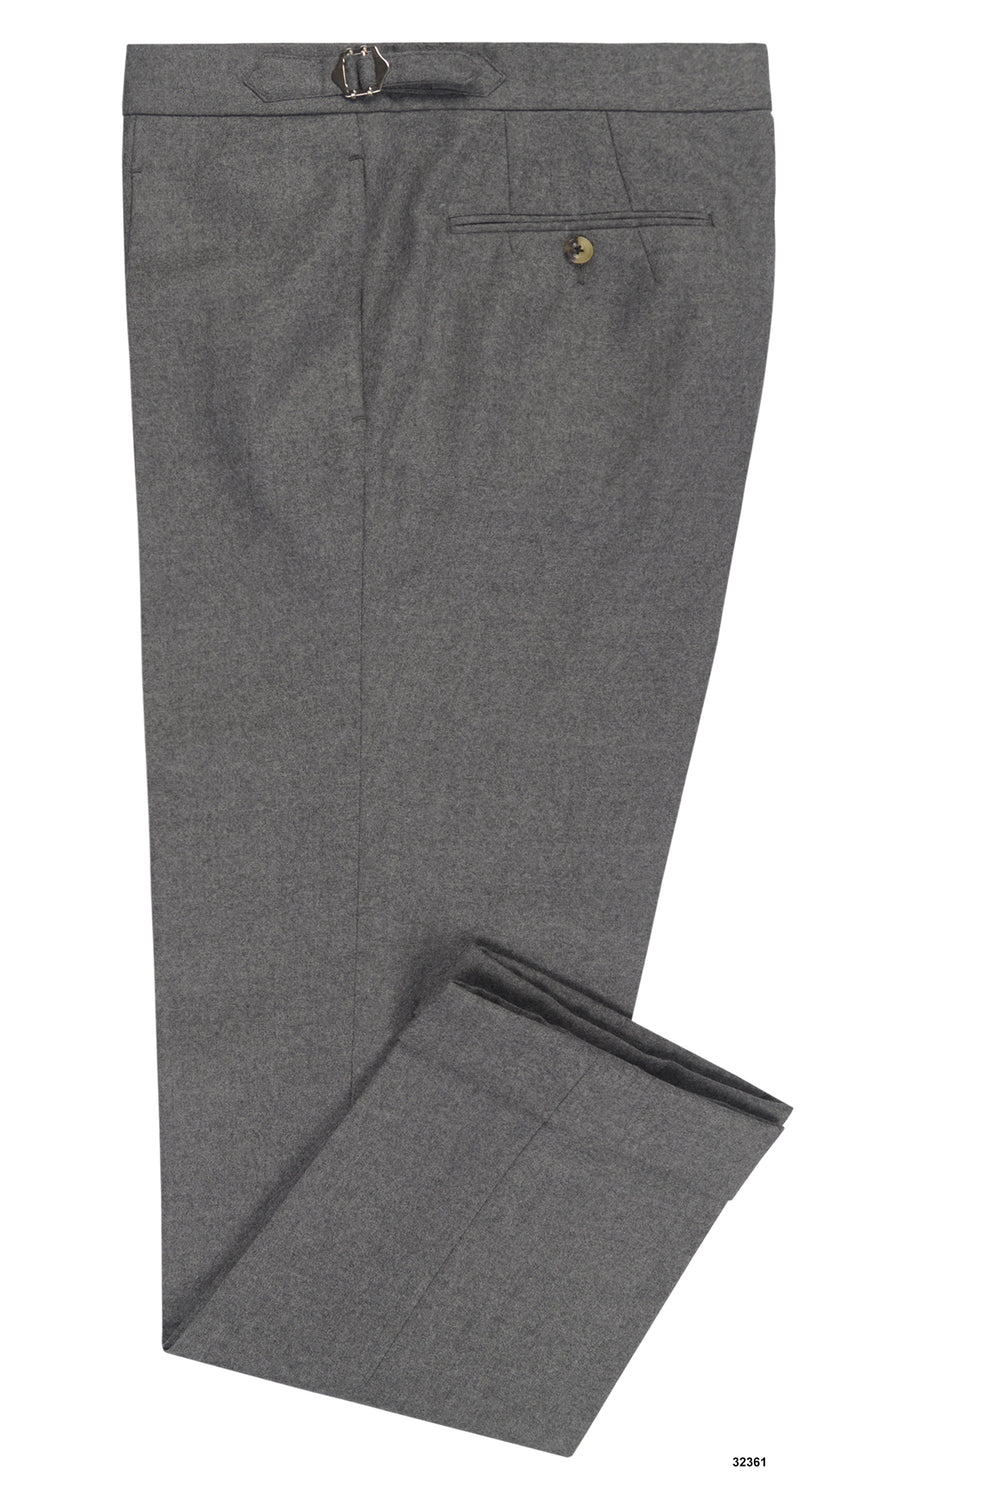 Holland Sherry Classic Worsted Flannel Dark Grey With Light Grey Flannel